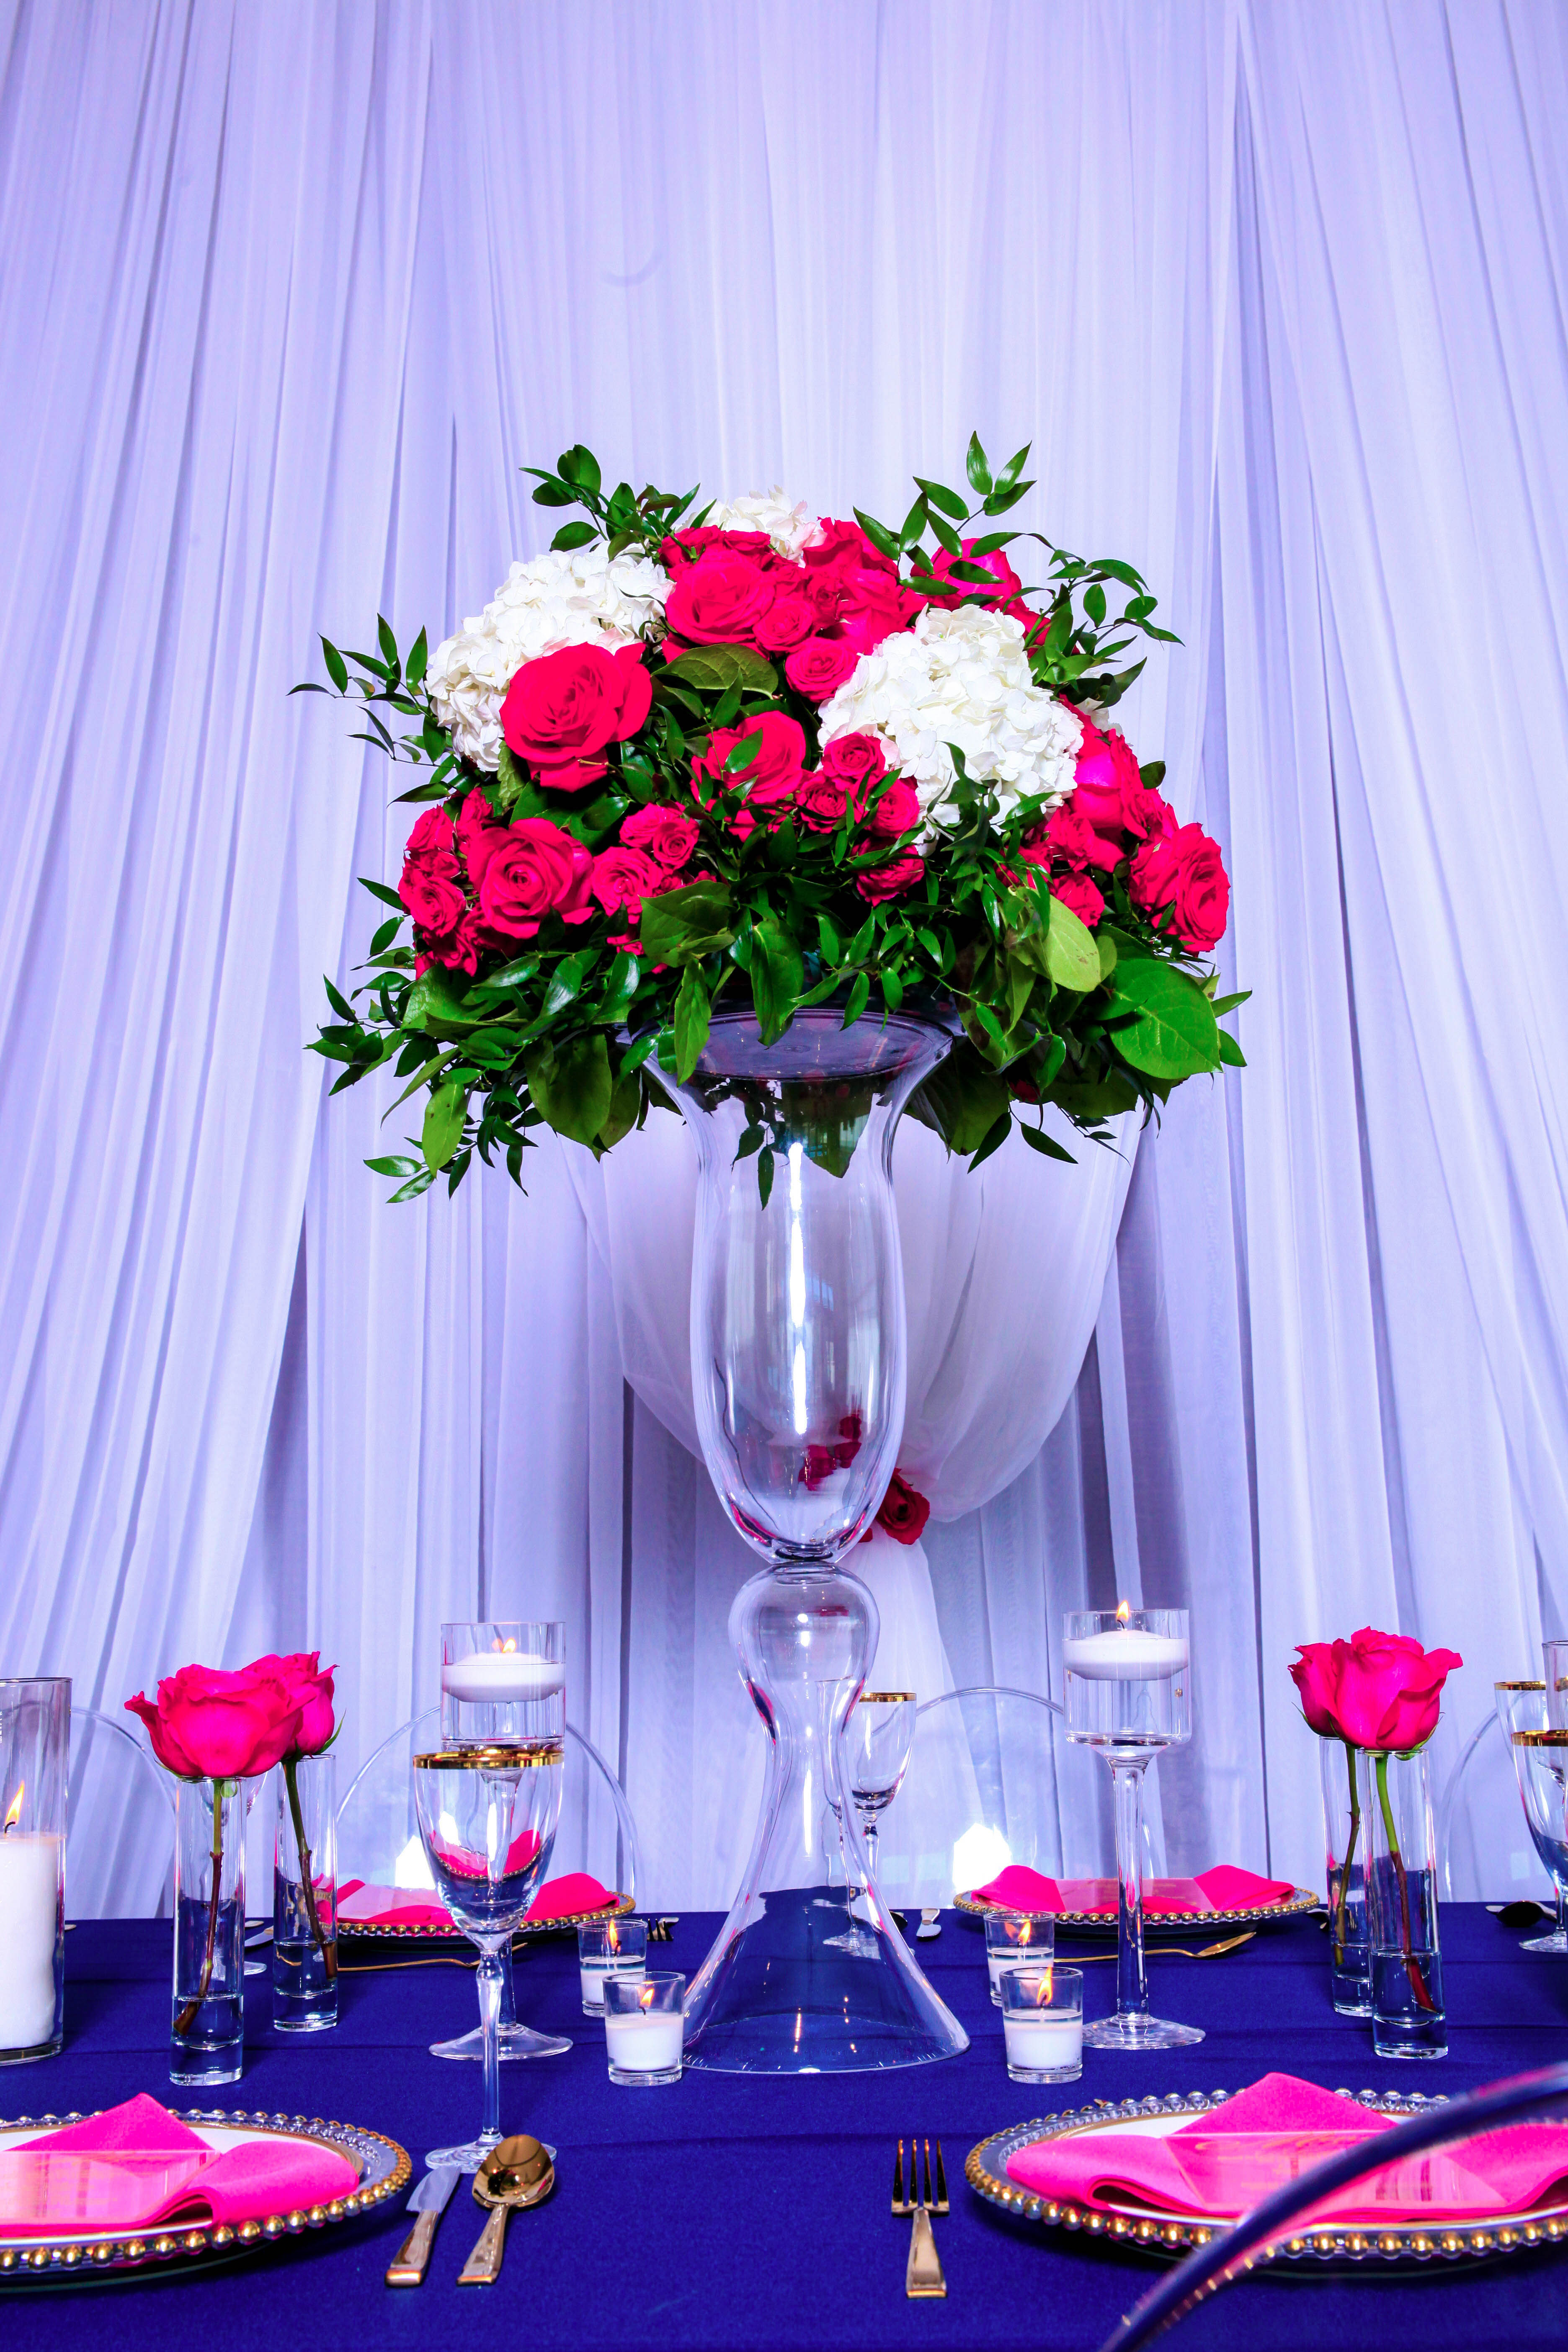 How to make a tall floral centerpiece